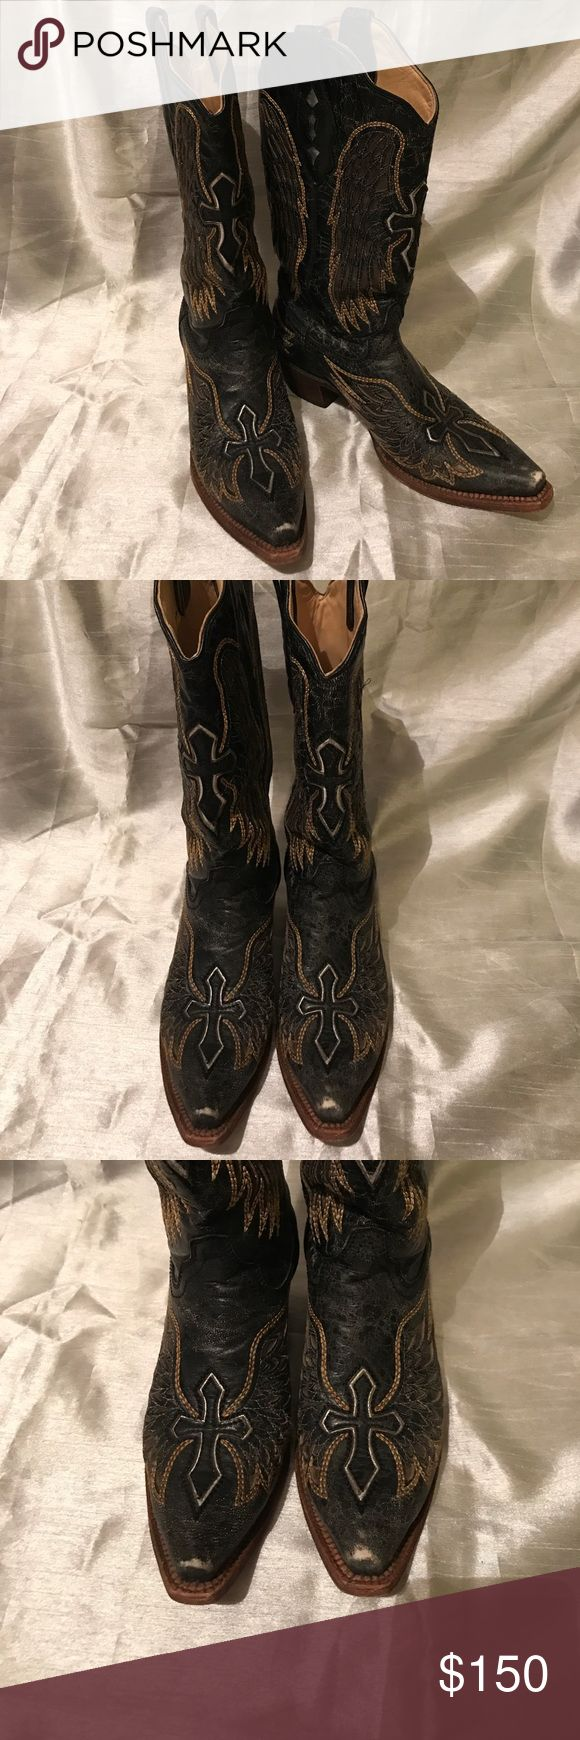 Corral wings and cross boots Corral vintage collection. Silver and gold wing and cross detail. Boots in very good used condition. Worn once to a concert. There is some wear on toes as shown in pics. Other than that they are great! Gorgeous boots!! Corral Shoes Heeled Boots